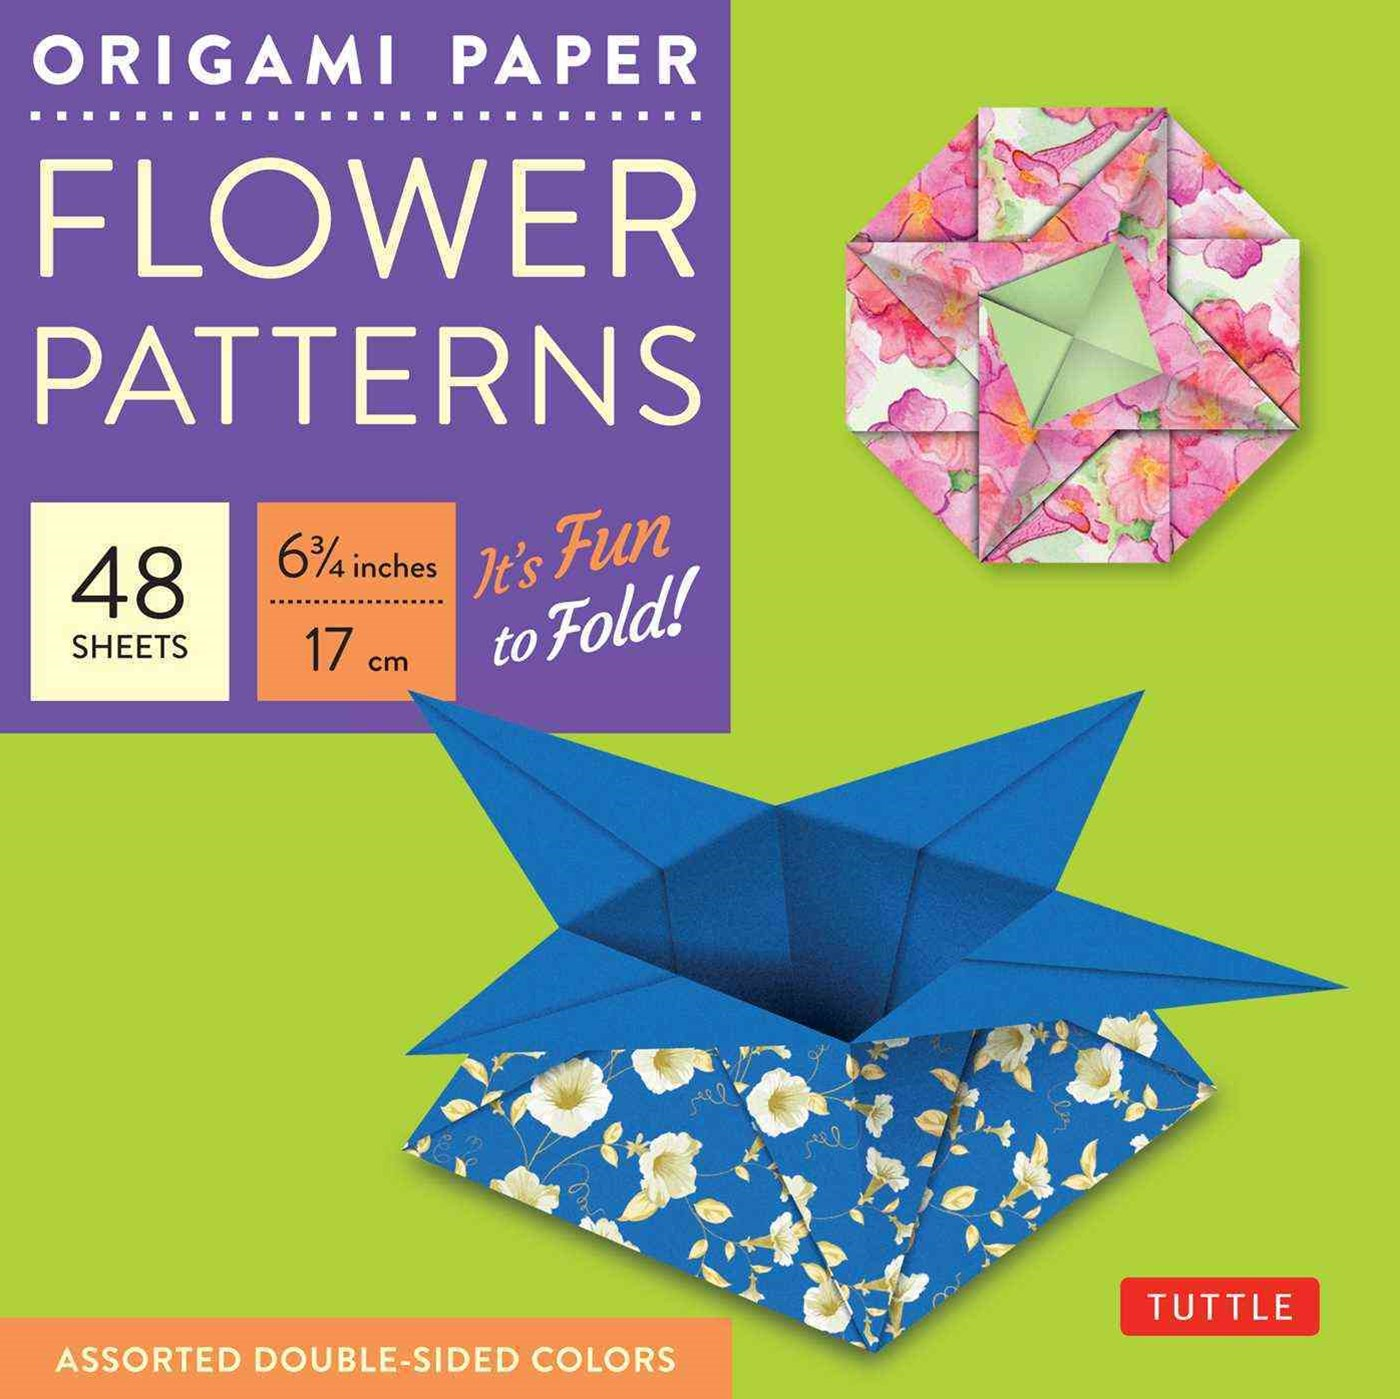 Origami Paper - Flower Patterns